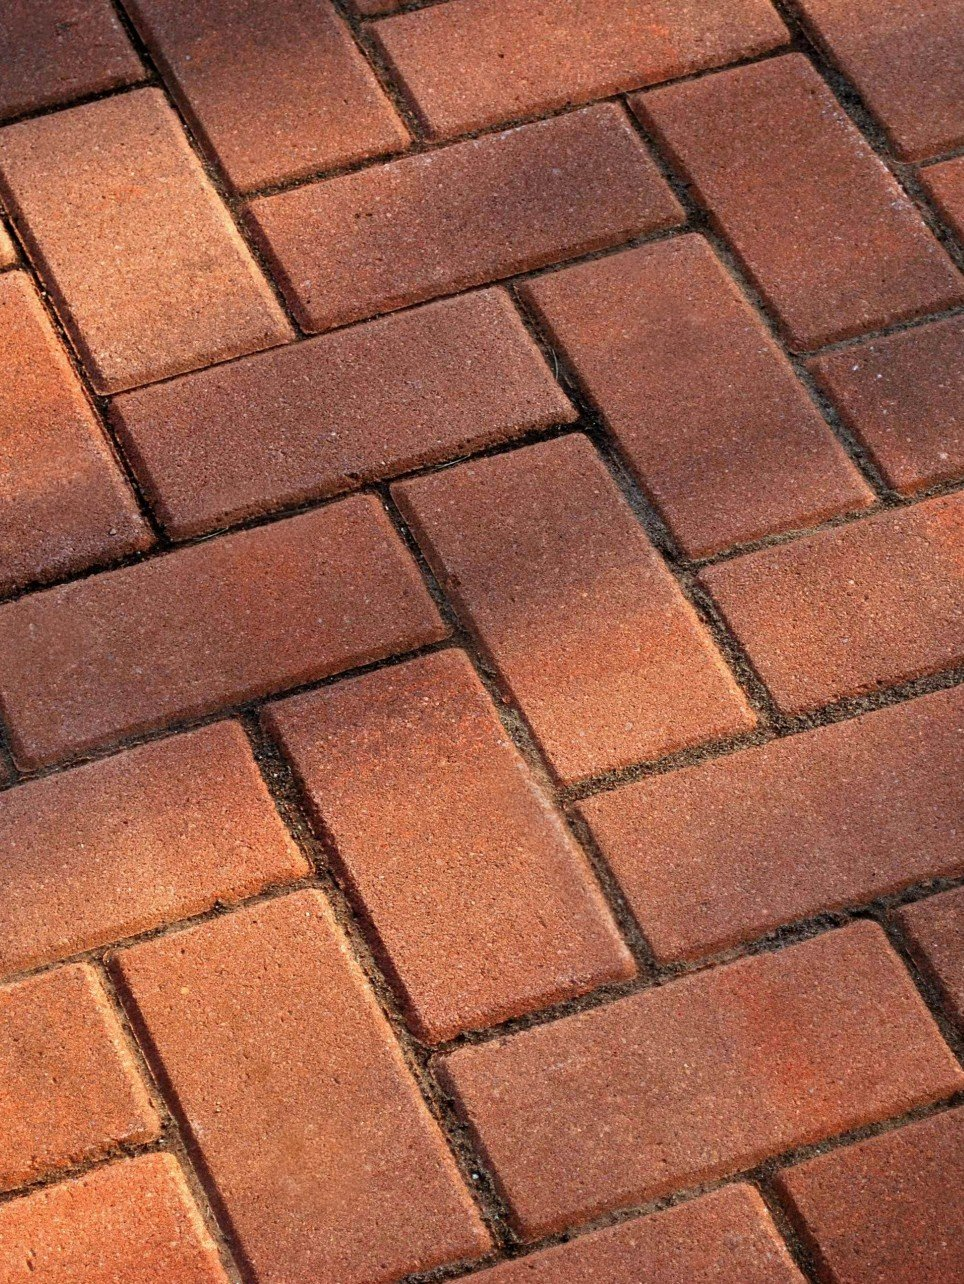 Block Paving Companies Mappleborough Green